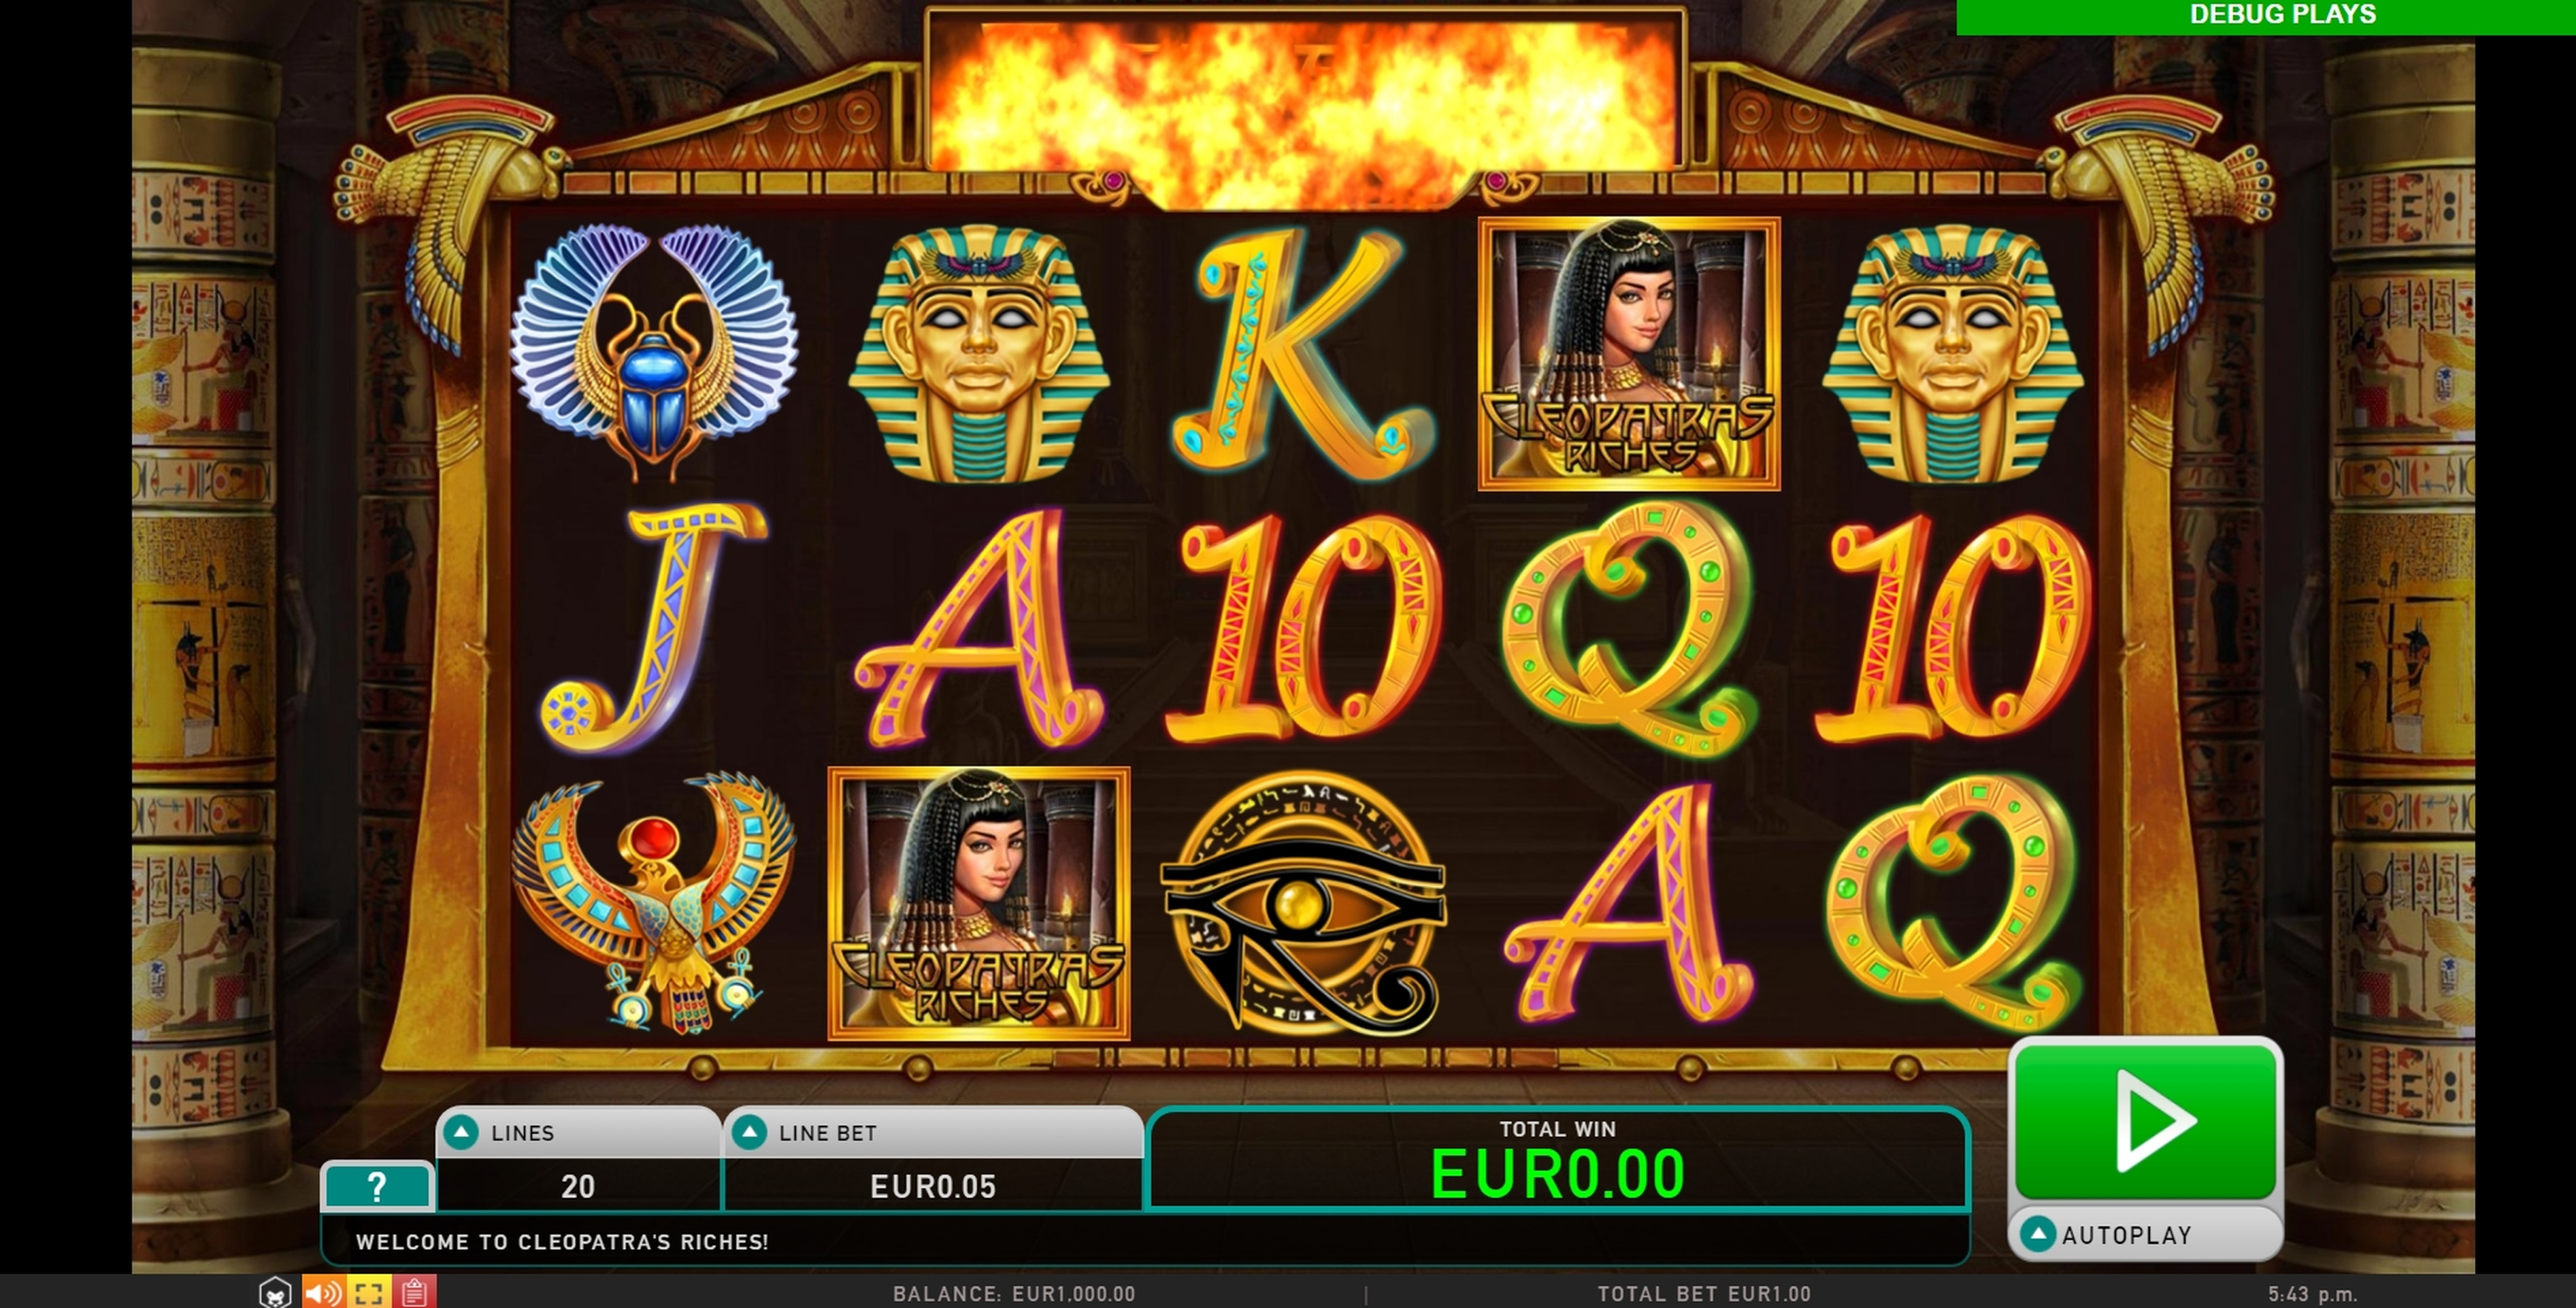 Reels in Cleopatras Riches Slot Game by Leander Games